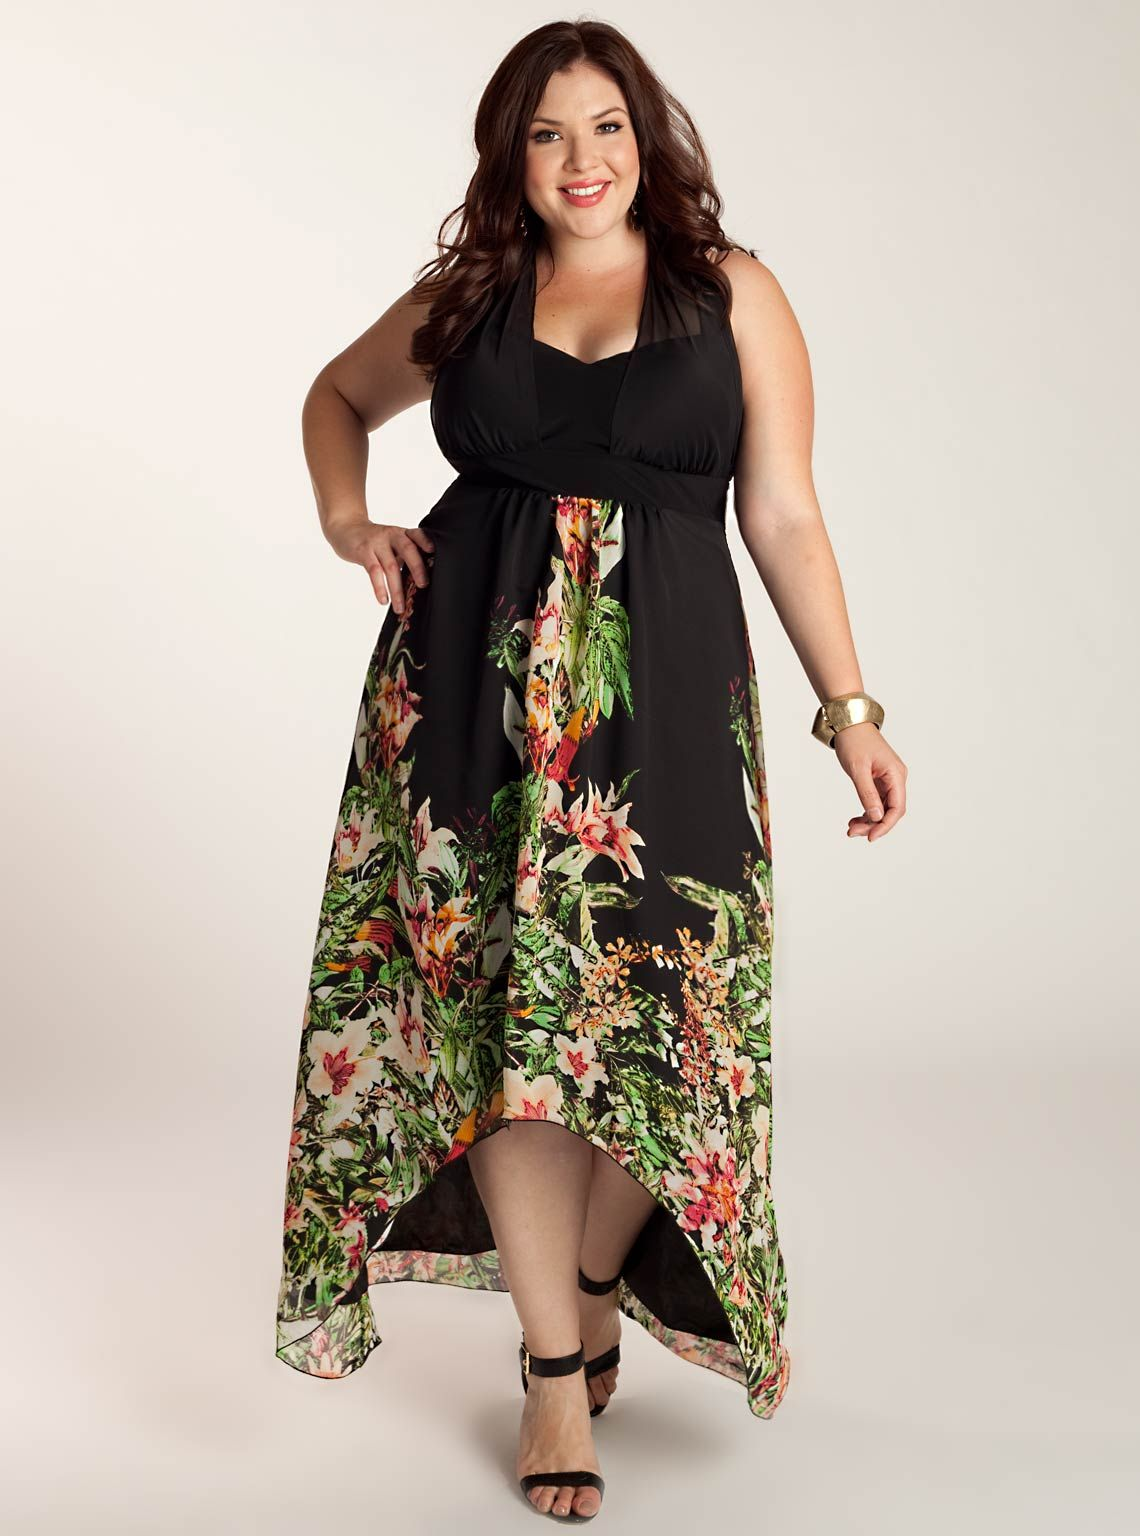 25 Plus Size Womens Clothing For Summer | Woman clothing, Plus ...